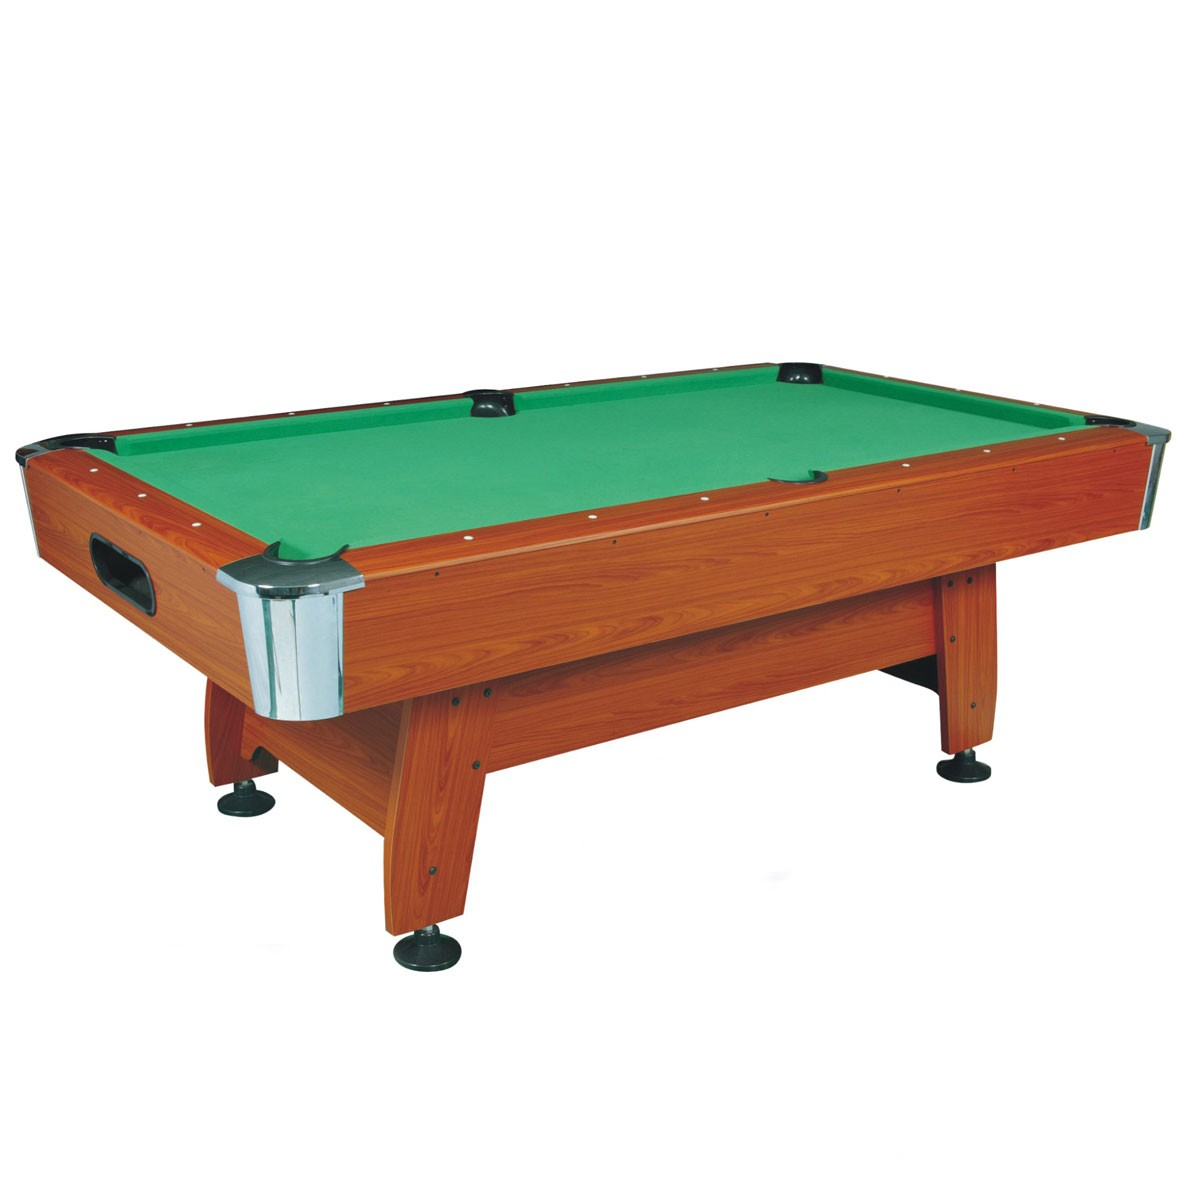 8 foot pool table with ball return system and accessories zlb p01 decoraport canada - Billiard table accessories ...